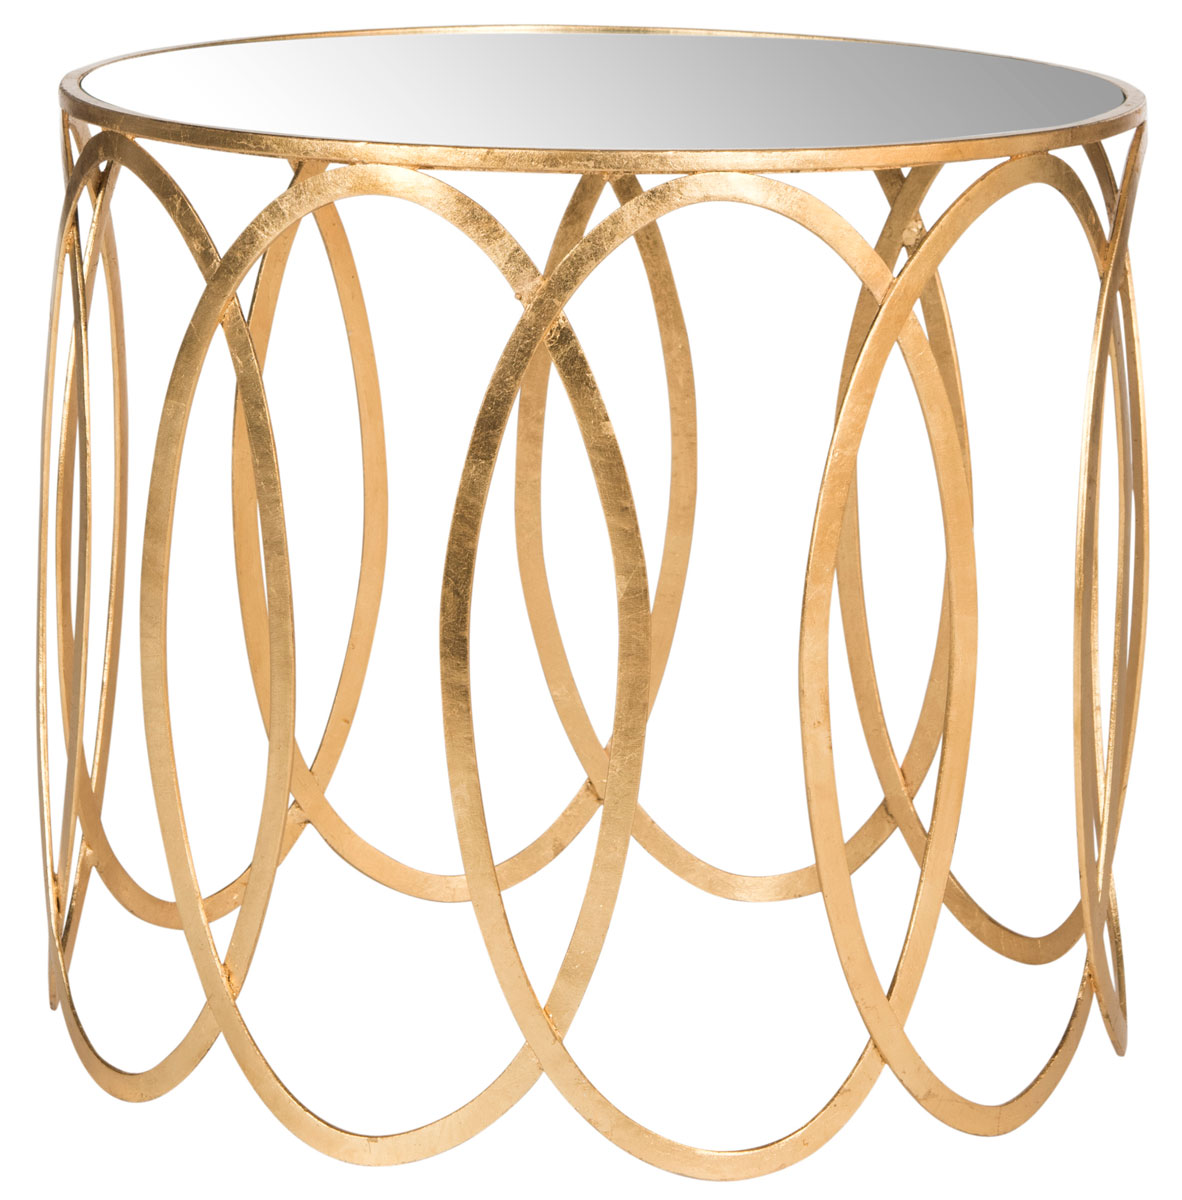 gold accent table end tables safavieh front product details wide nightstand antique round pedestal threshold rectangular umbrella rustic metal and wood ethan allen dining chairs